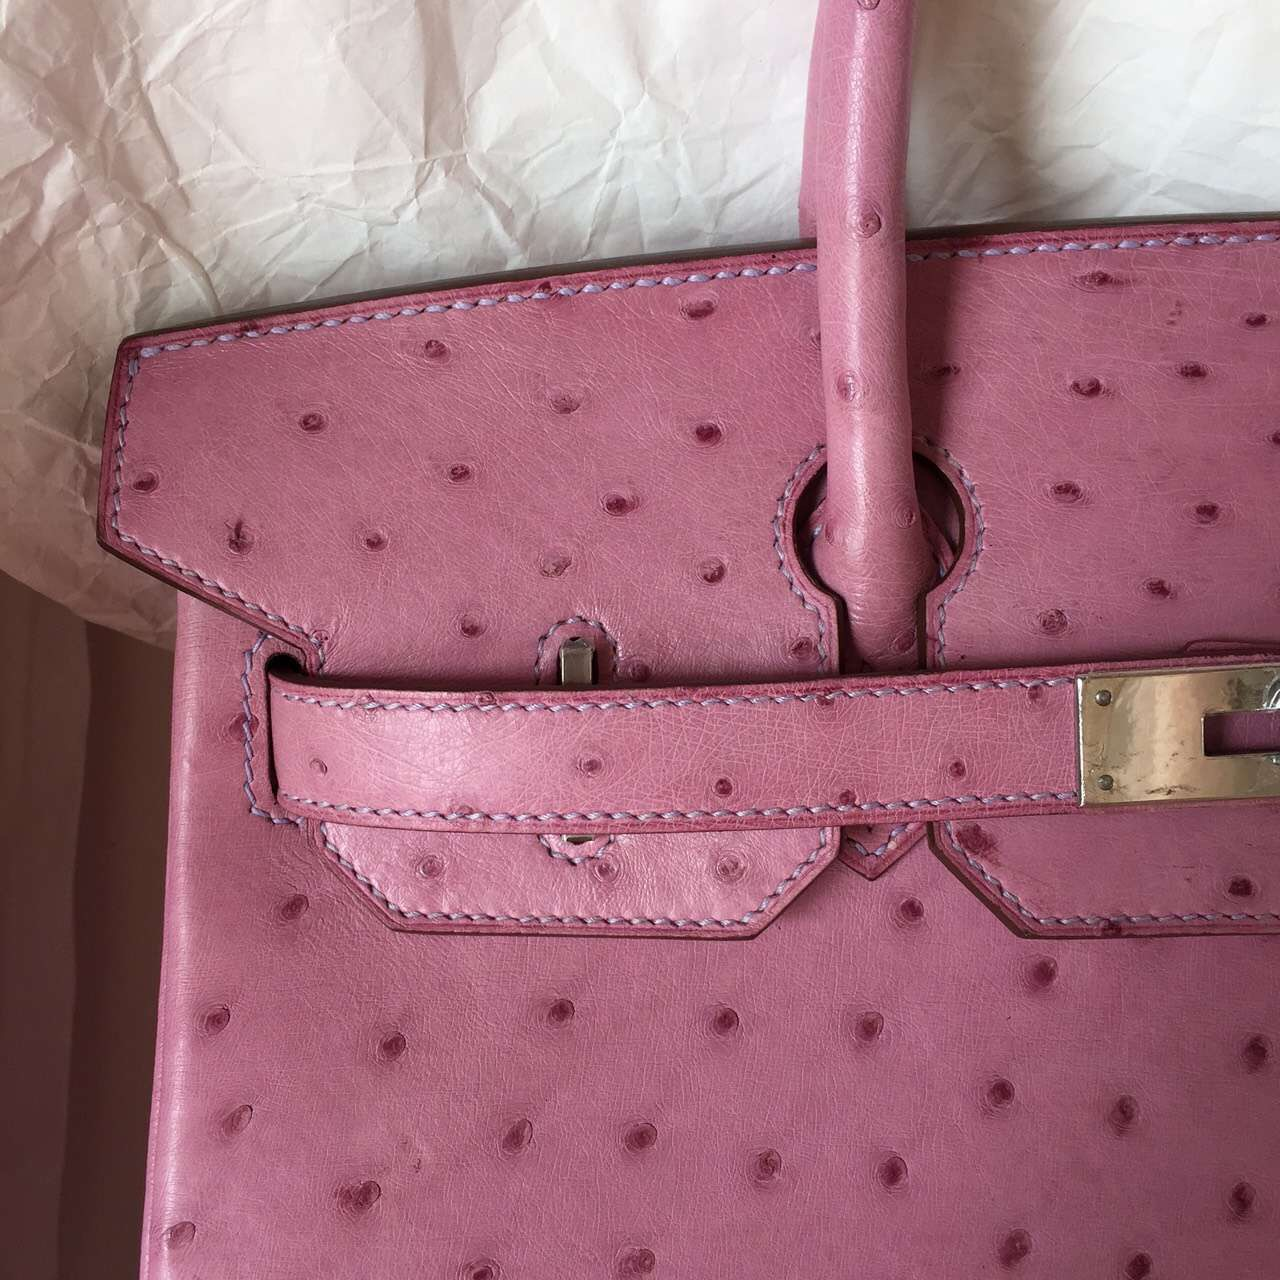 Wholesale Hermes Birkin Bag in Pink Purple Ostrich Leather Ladies' Handbag 30CM